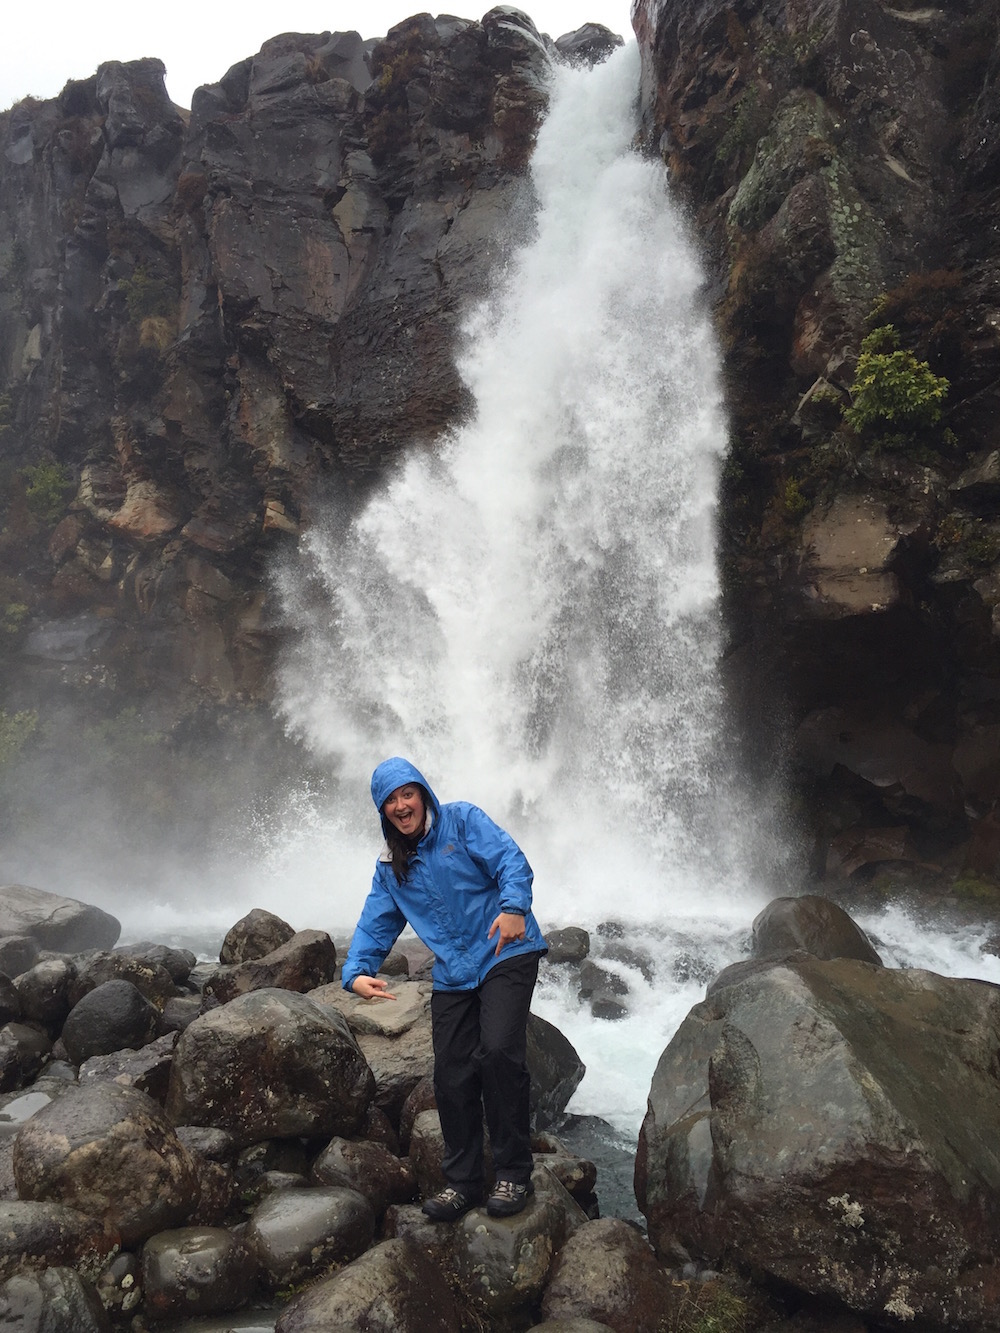 On this rainy day hike on the Taranaki Falls Track in Tongariro National Park, I was thankful I had packed my rain gear.